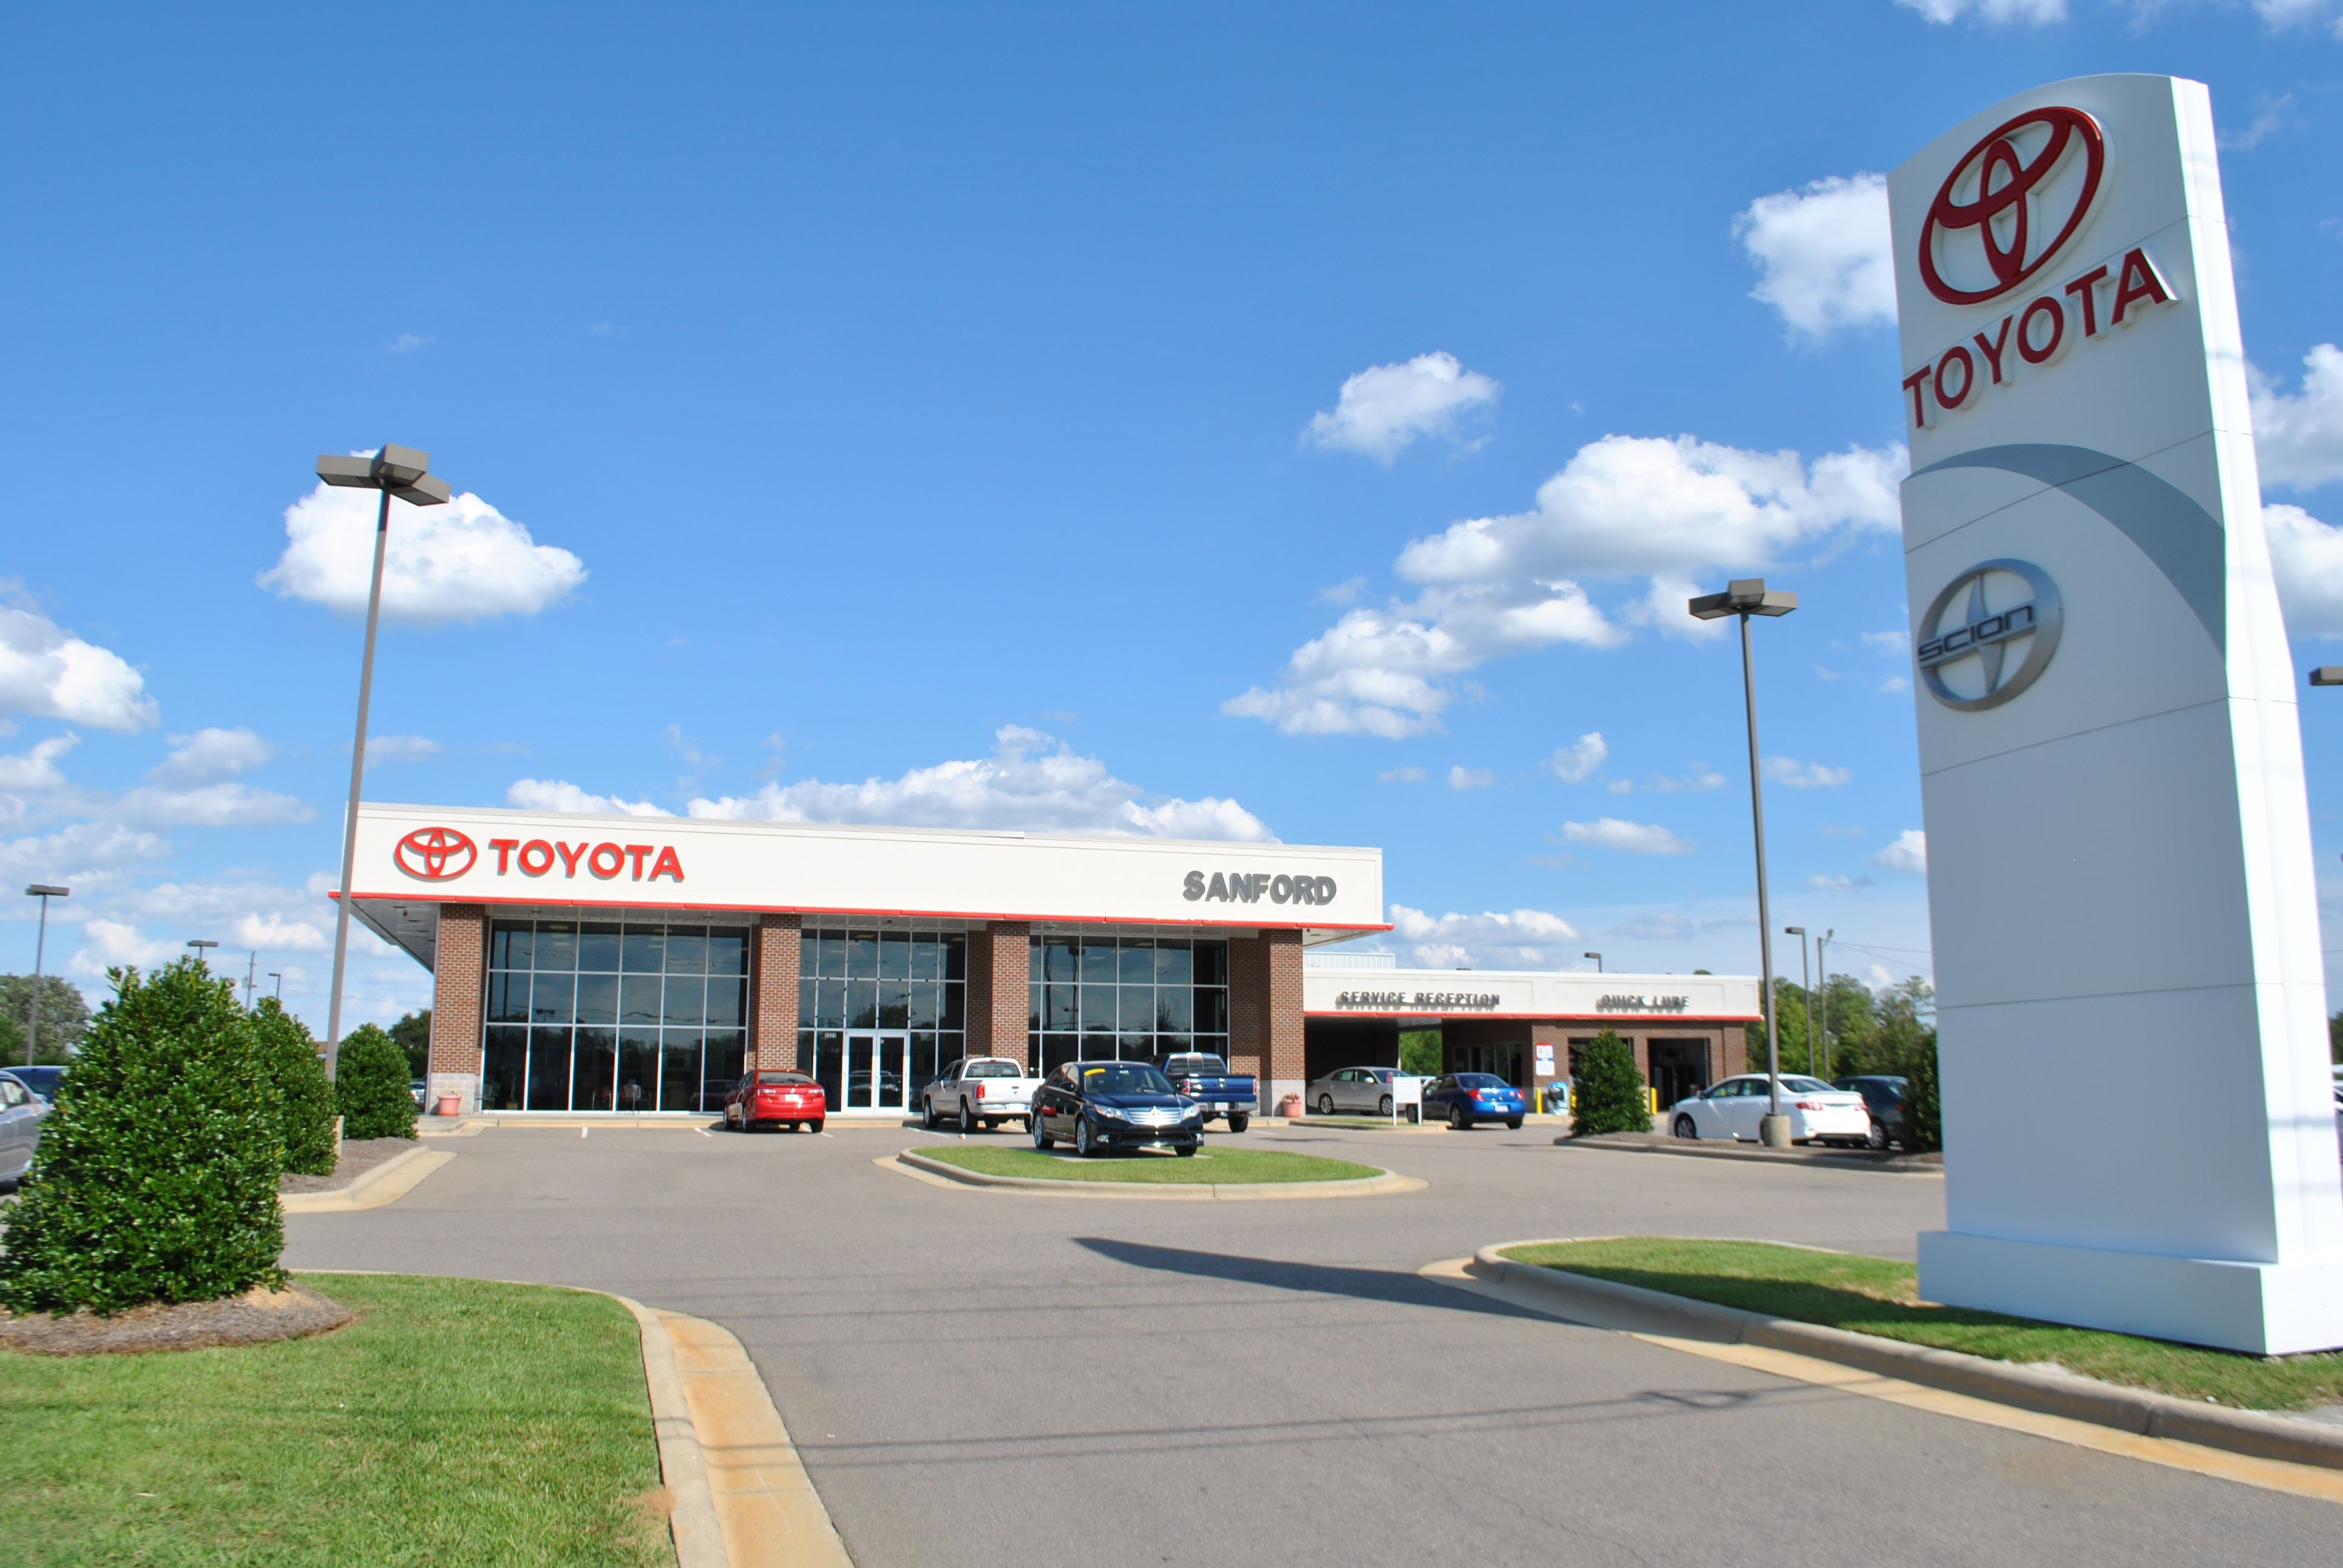 fred anderson toyota of sanford 3321 nc hwy 87 s sanford nc auto